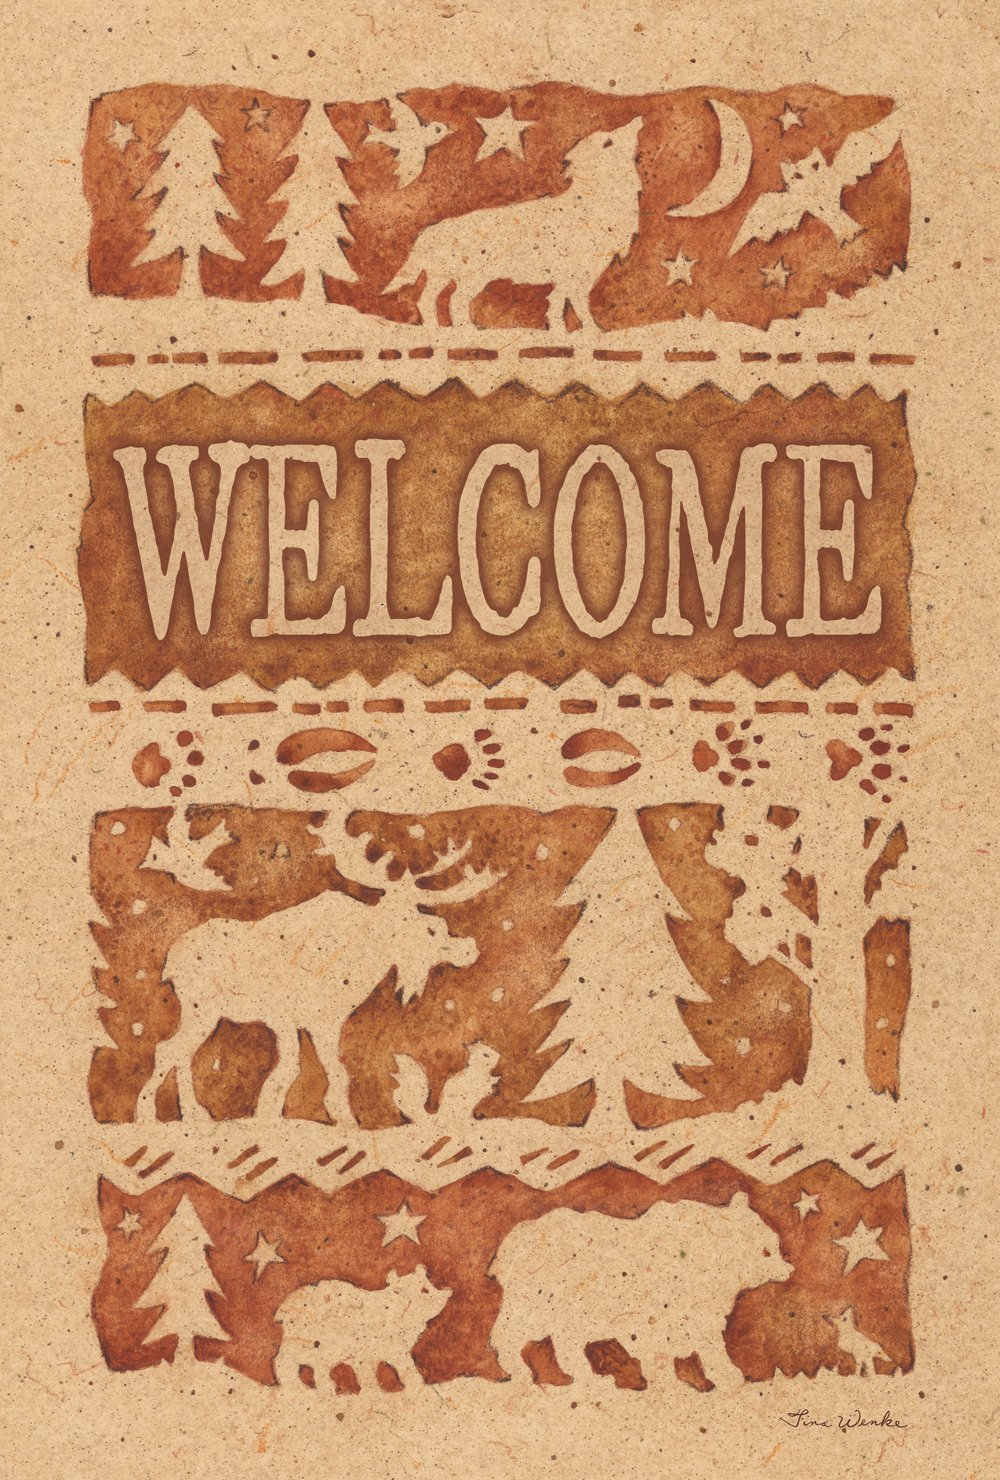 Toland Home Garden Wildlife Welcome 12.5 x 18 Inch Decorative Rustic Outdoors Forest Animal Bear Moose Wolf Garden Flag